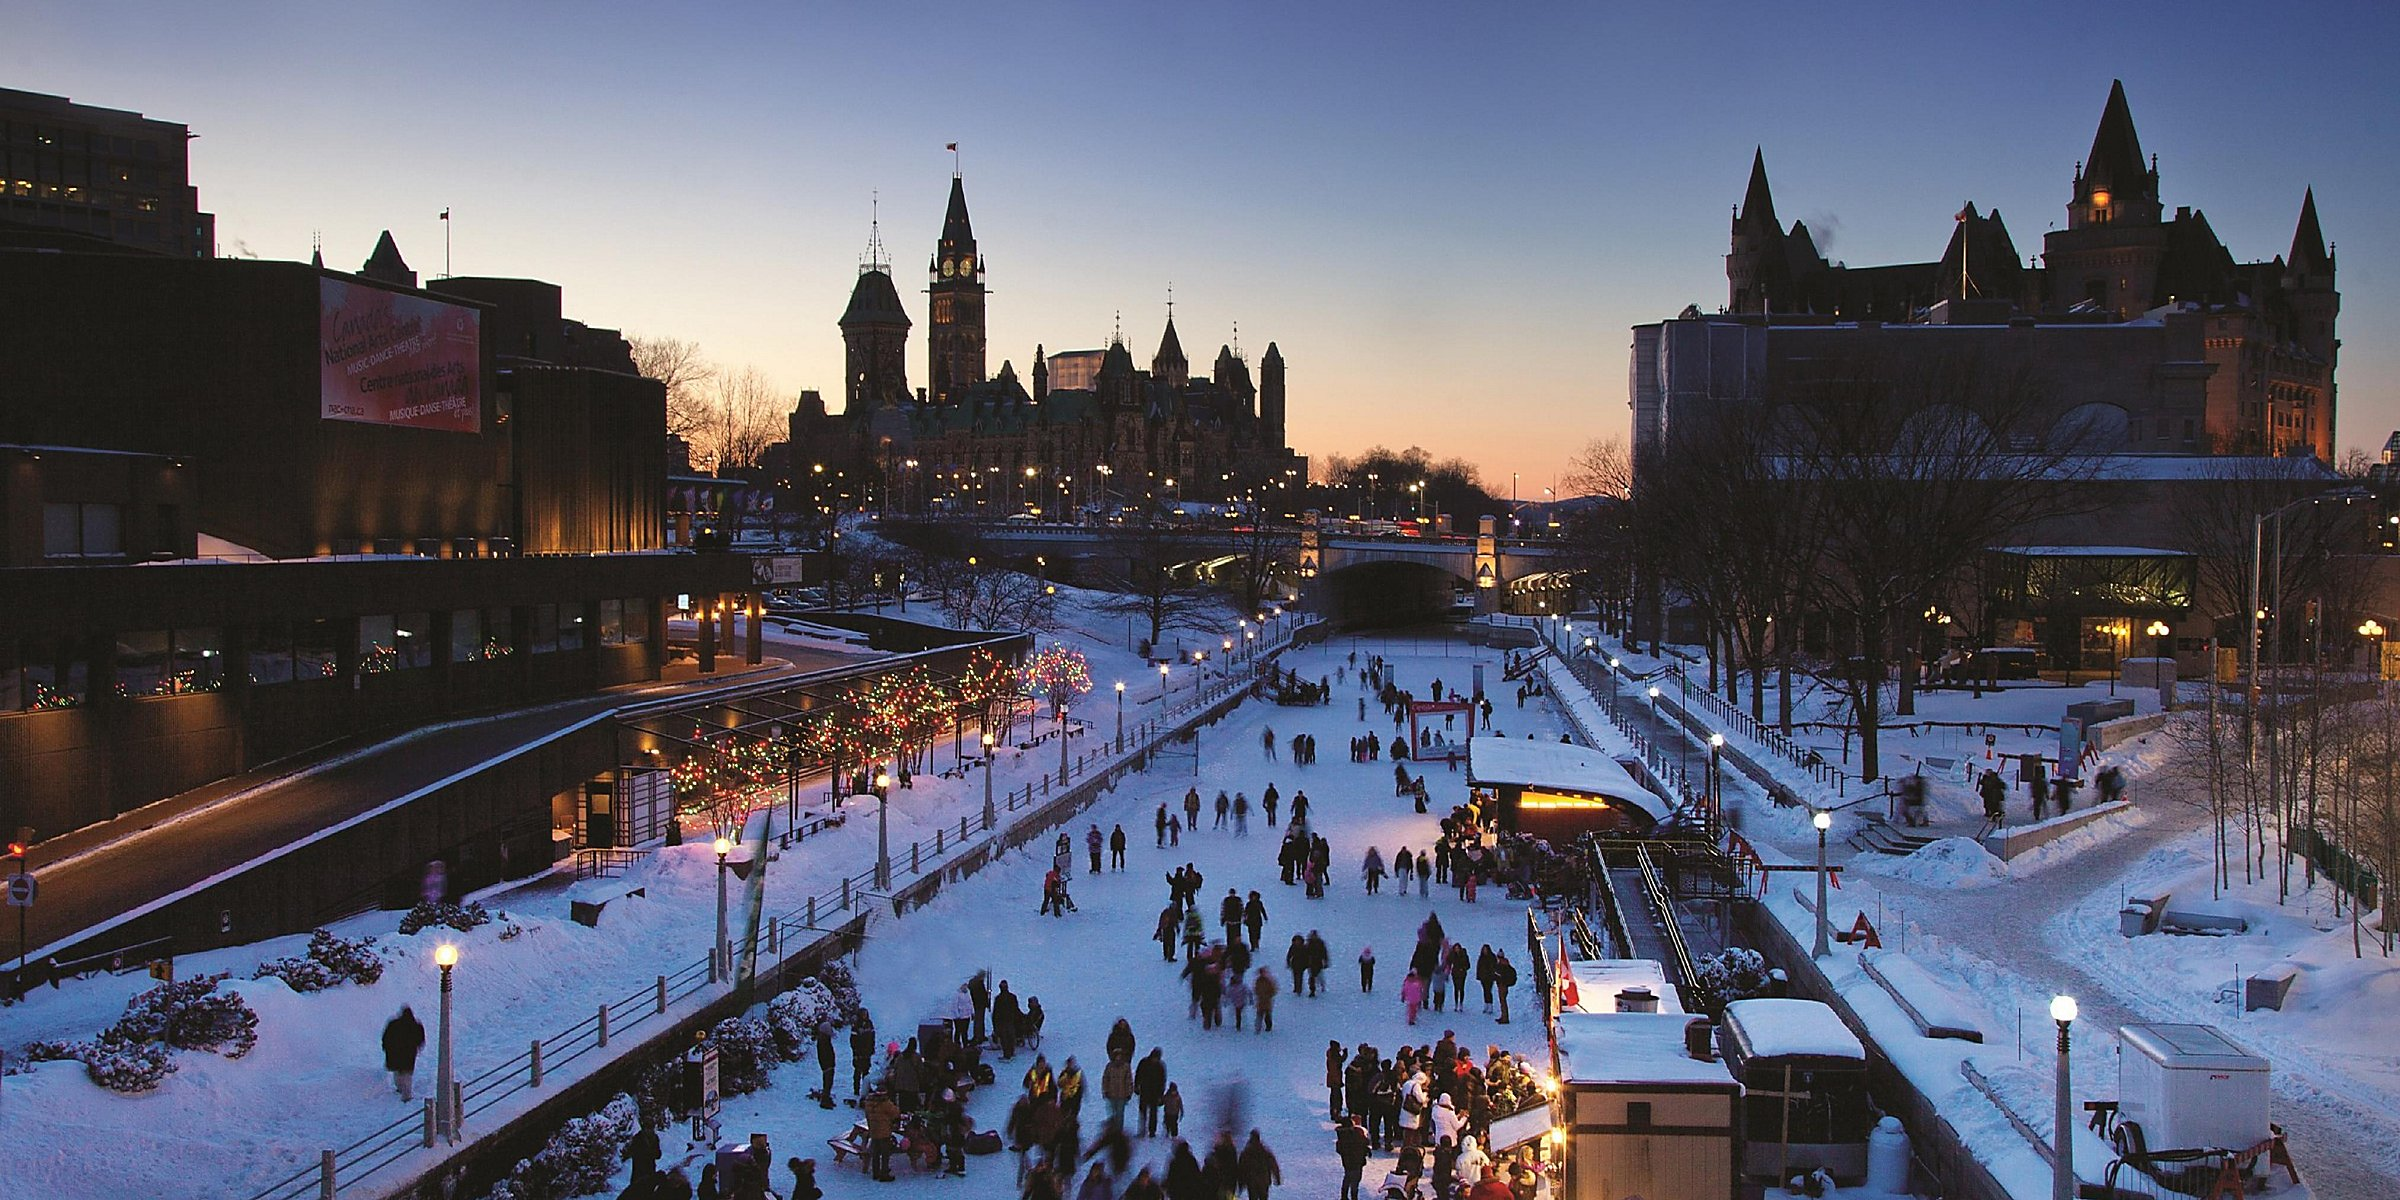 Photo of people ice skating on Rideau Canal in winter, Ottawa